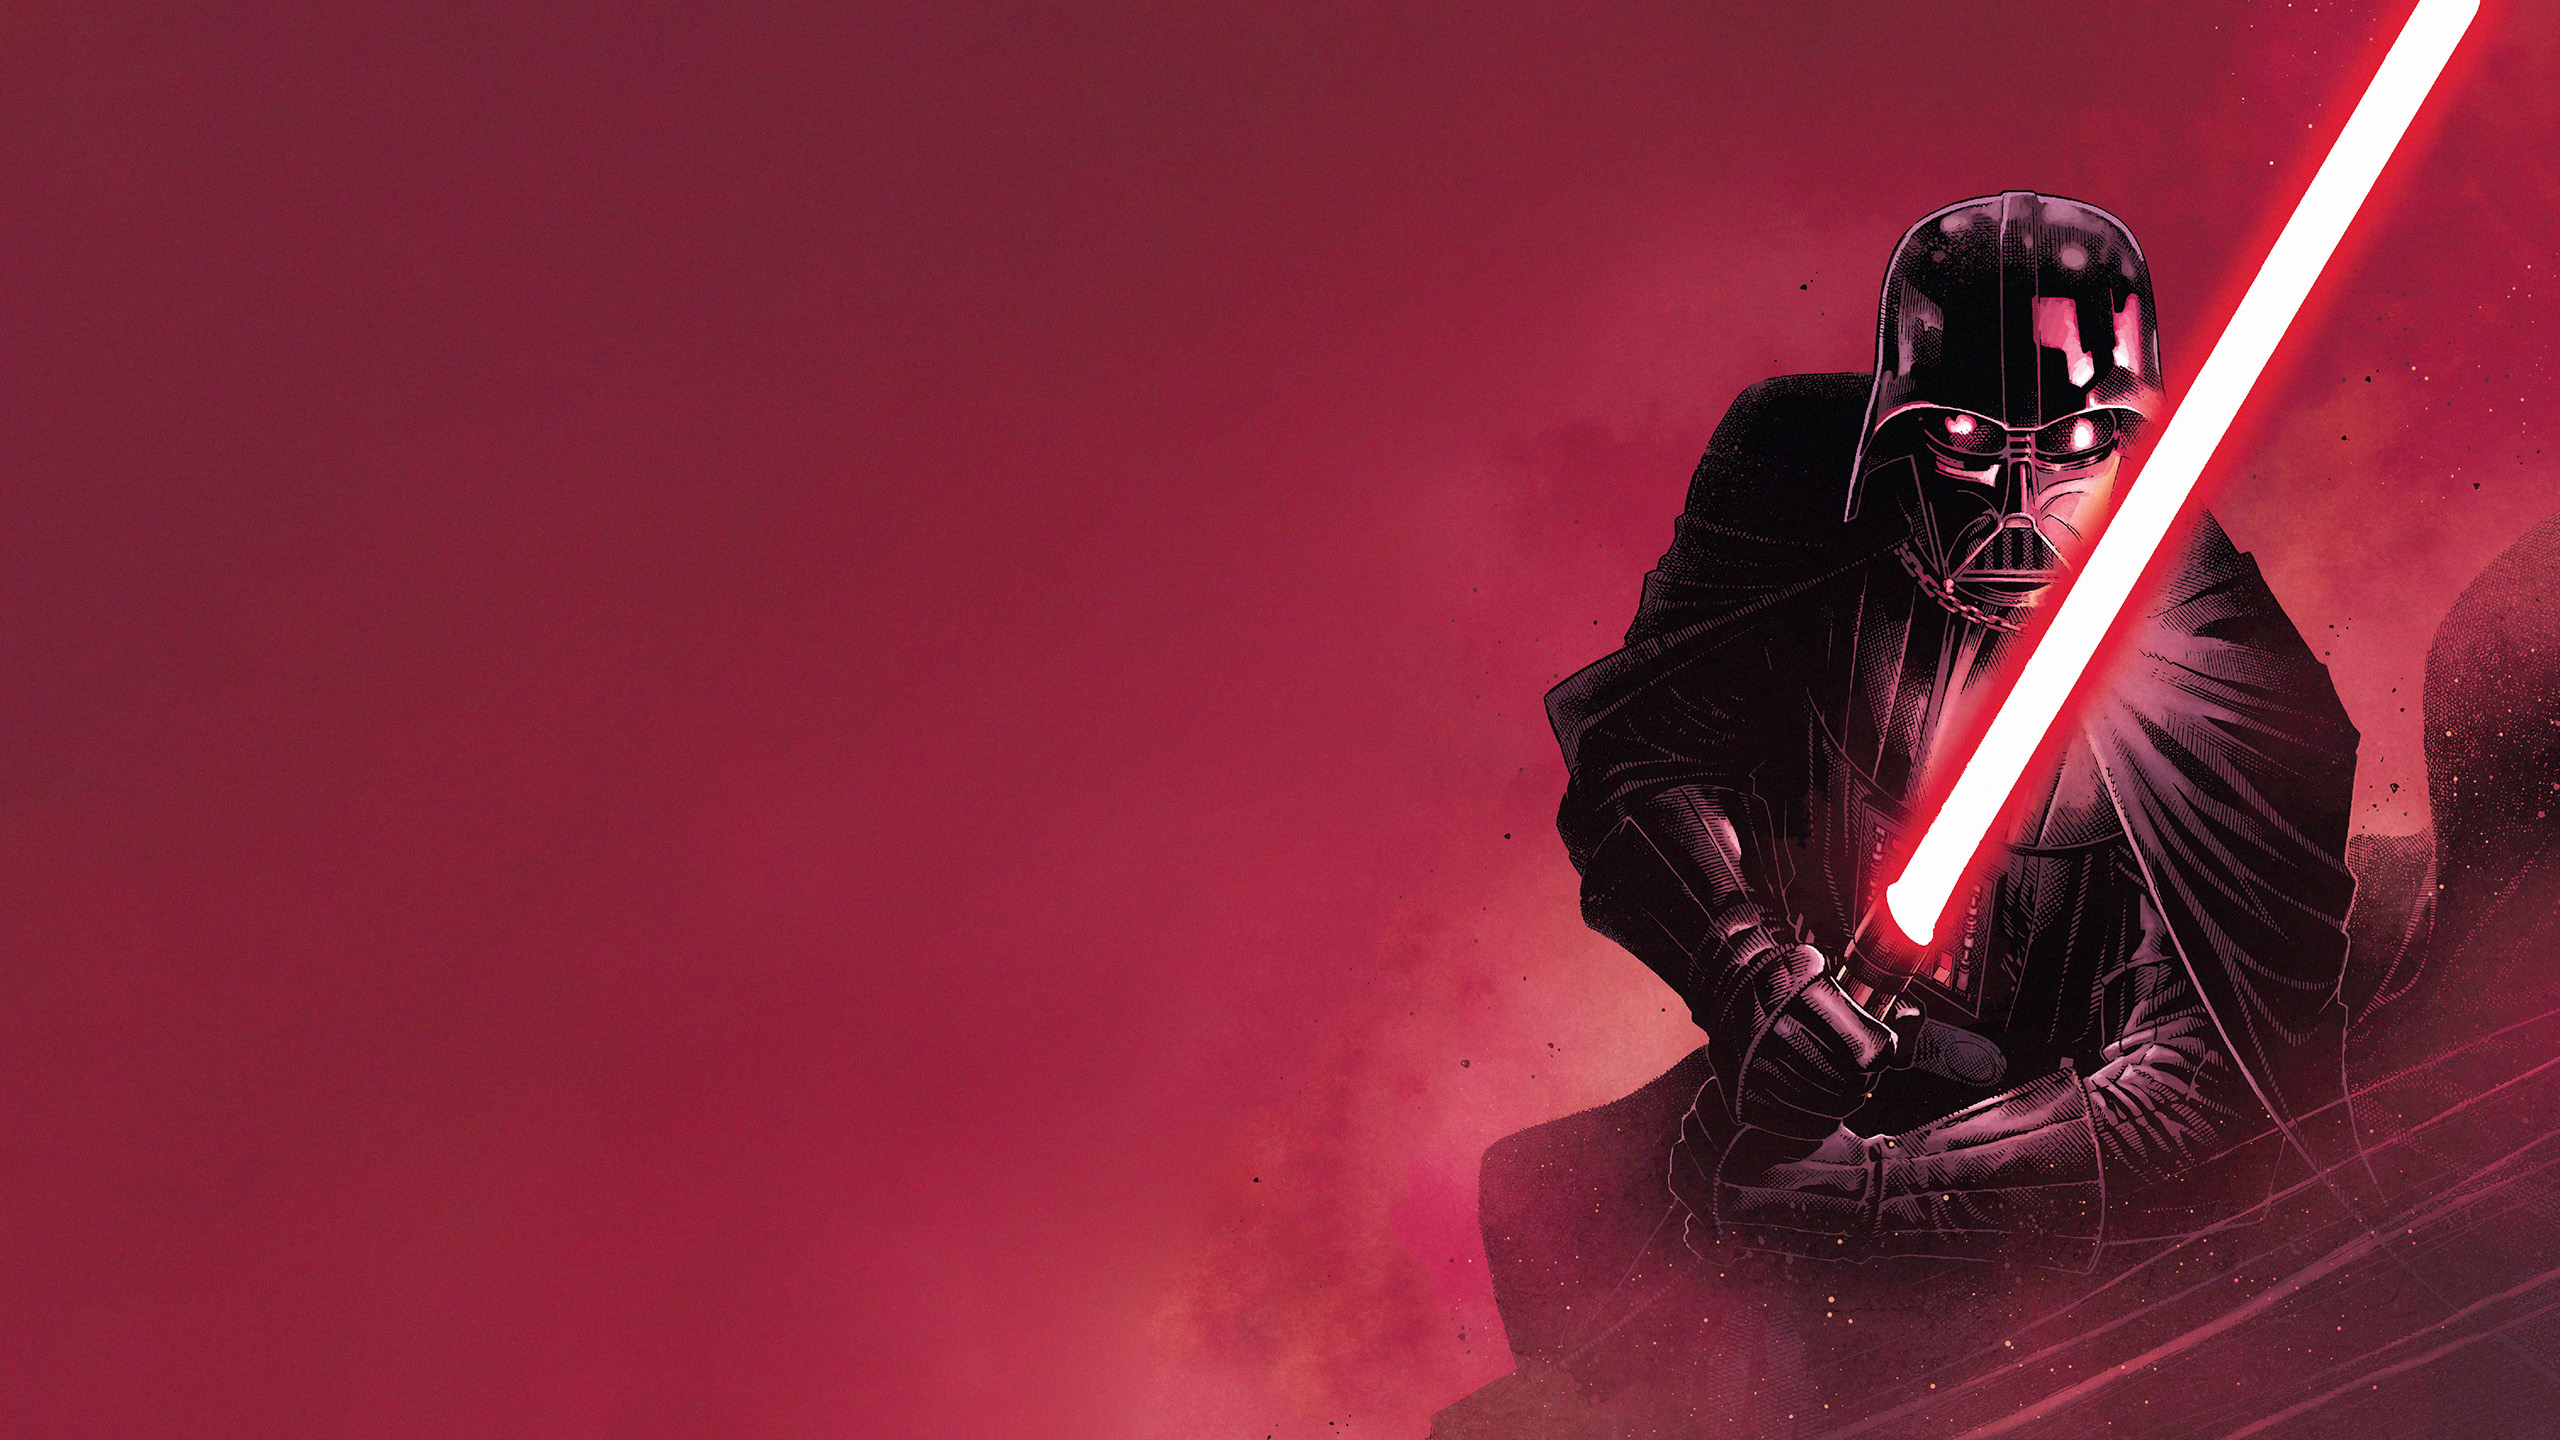 Star Wars Darth Vader Hd Wallpaper Background Image 2560x1440 Id 871547 Wallpaper Abyss